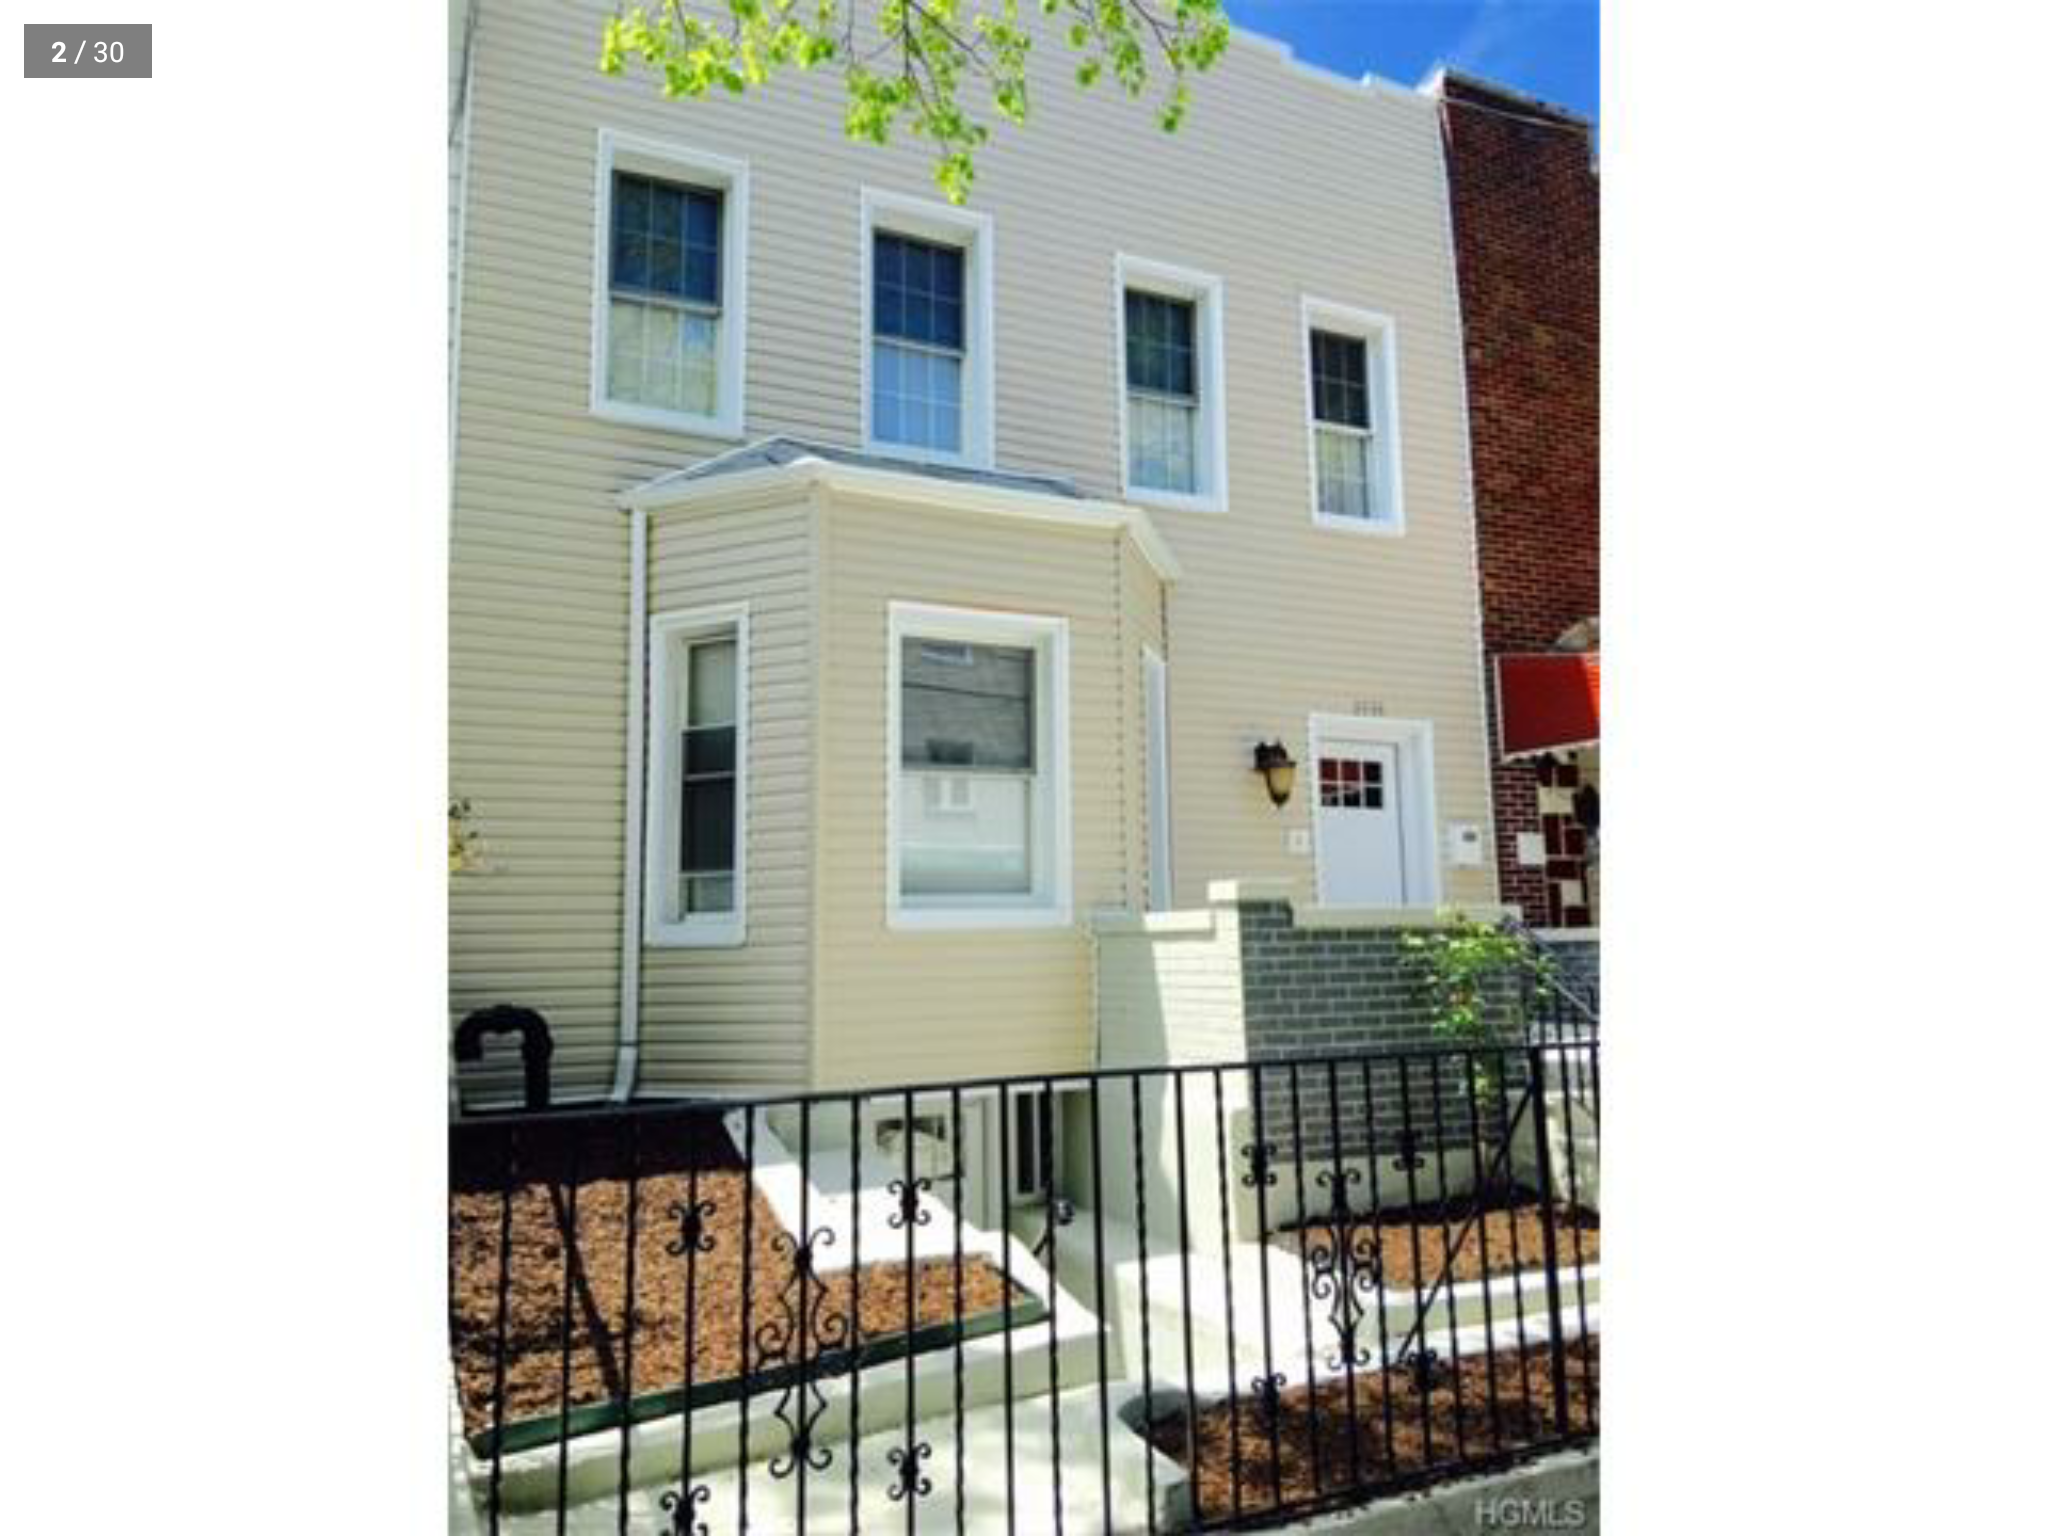 2731 Holland Avenue  Bronx, NY 10467